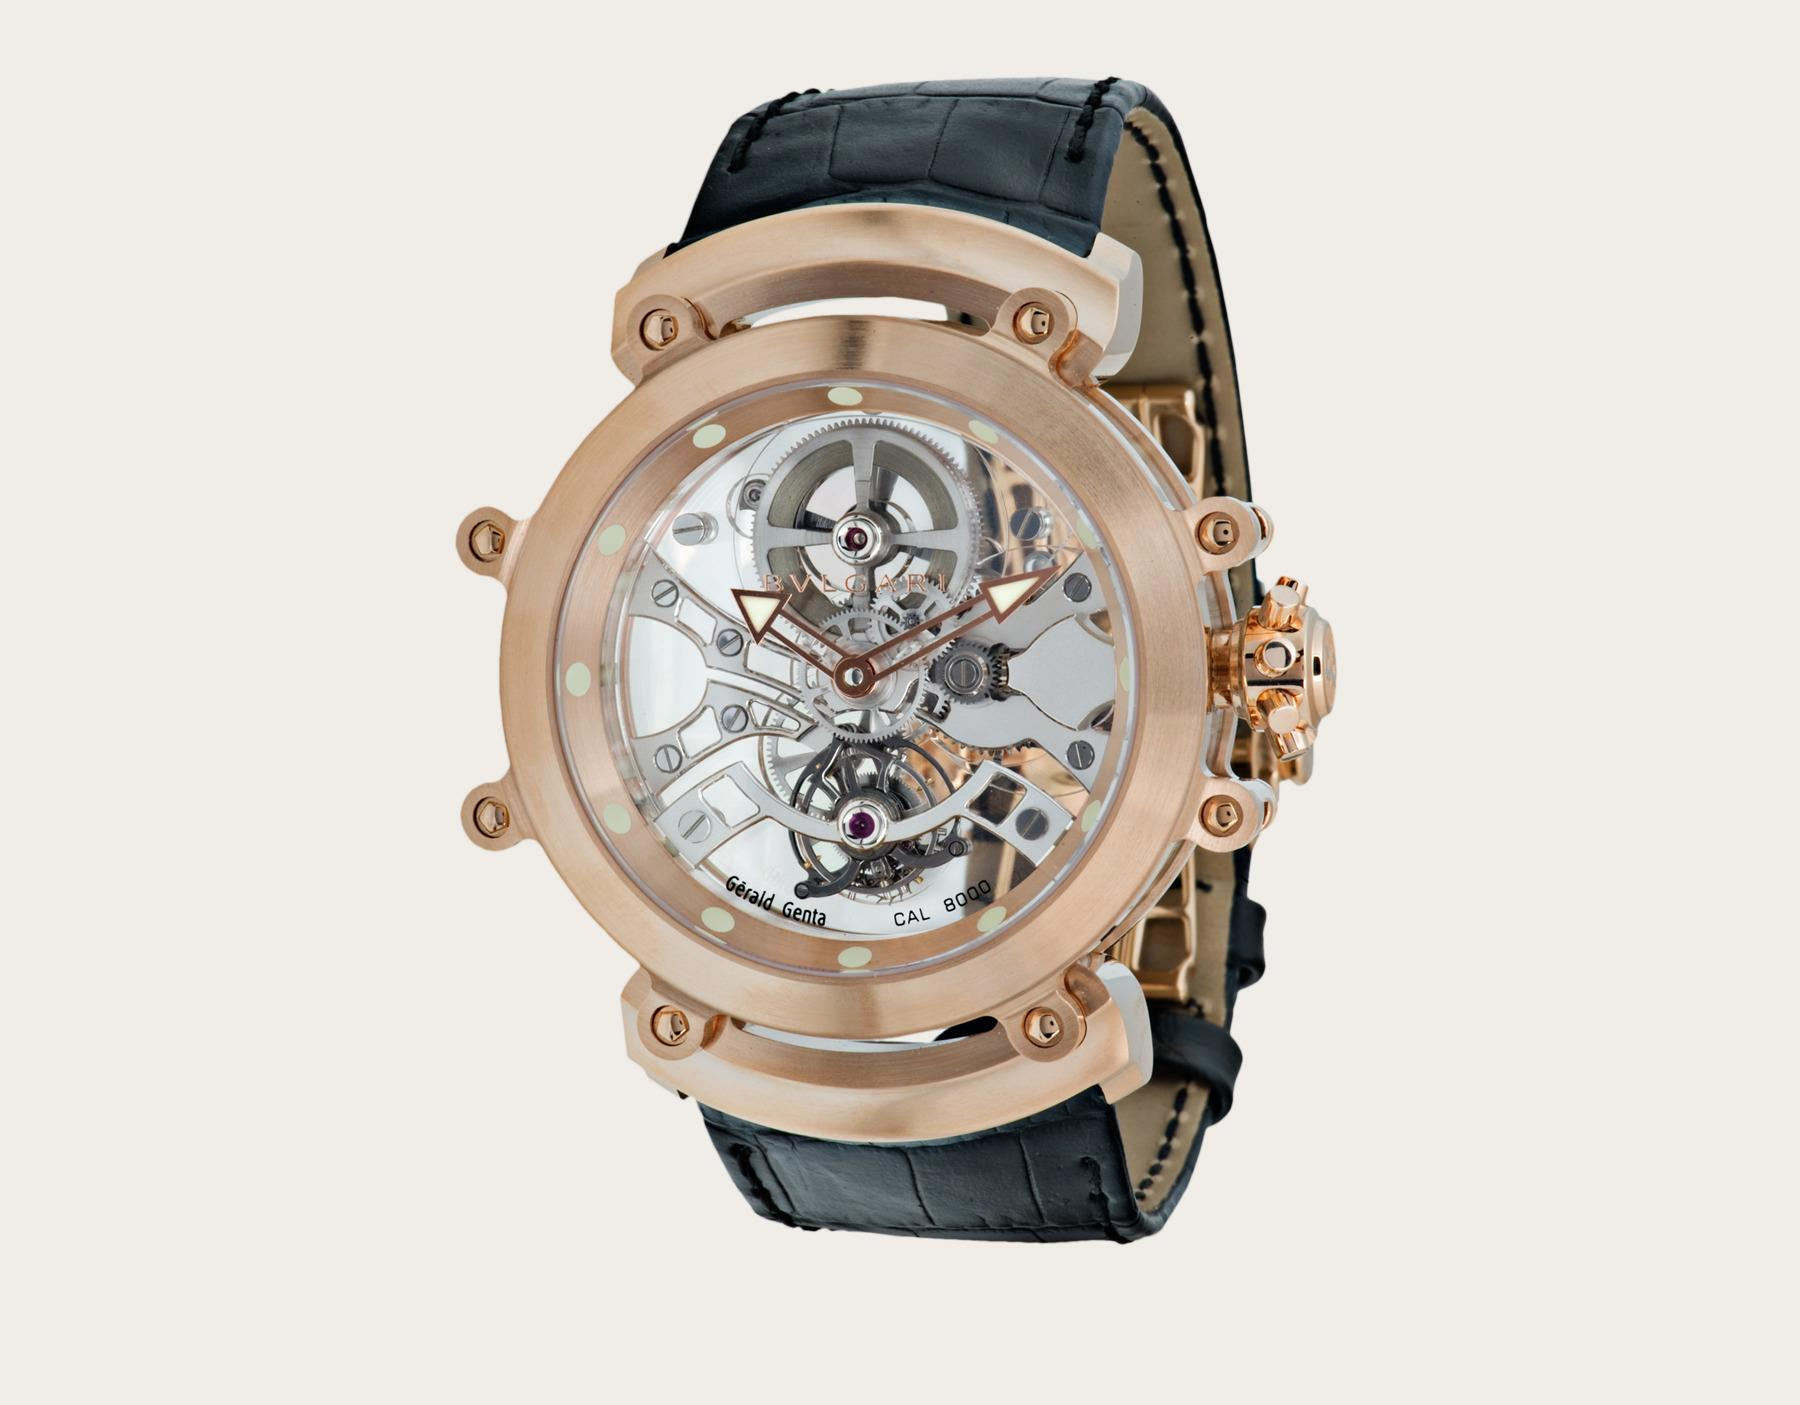 Bvlgari Gerald Genta 50th Anniversary Watch